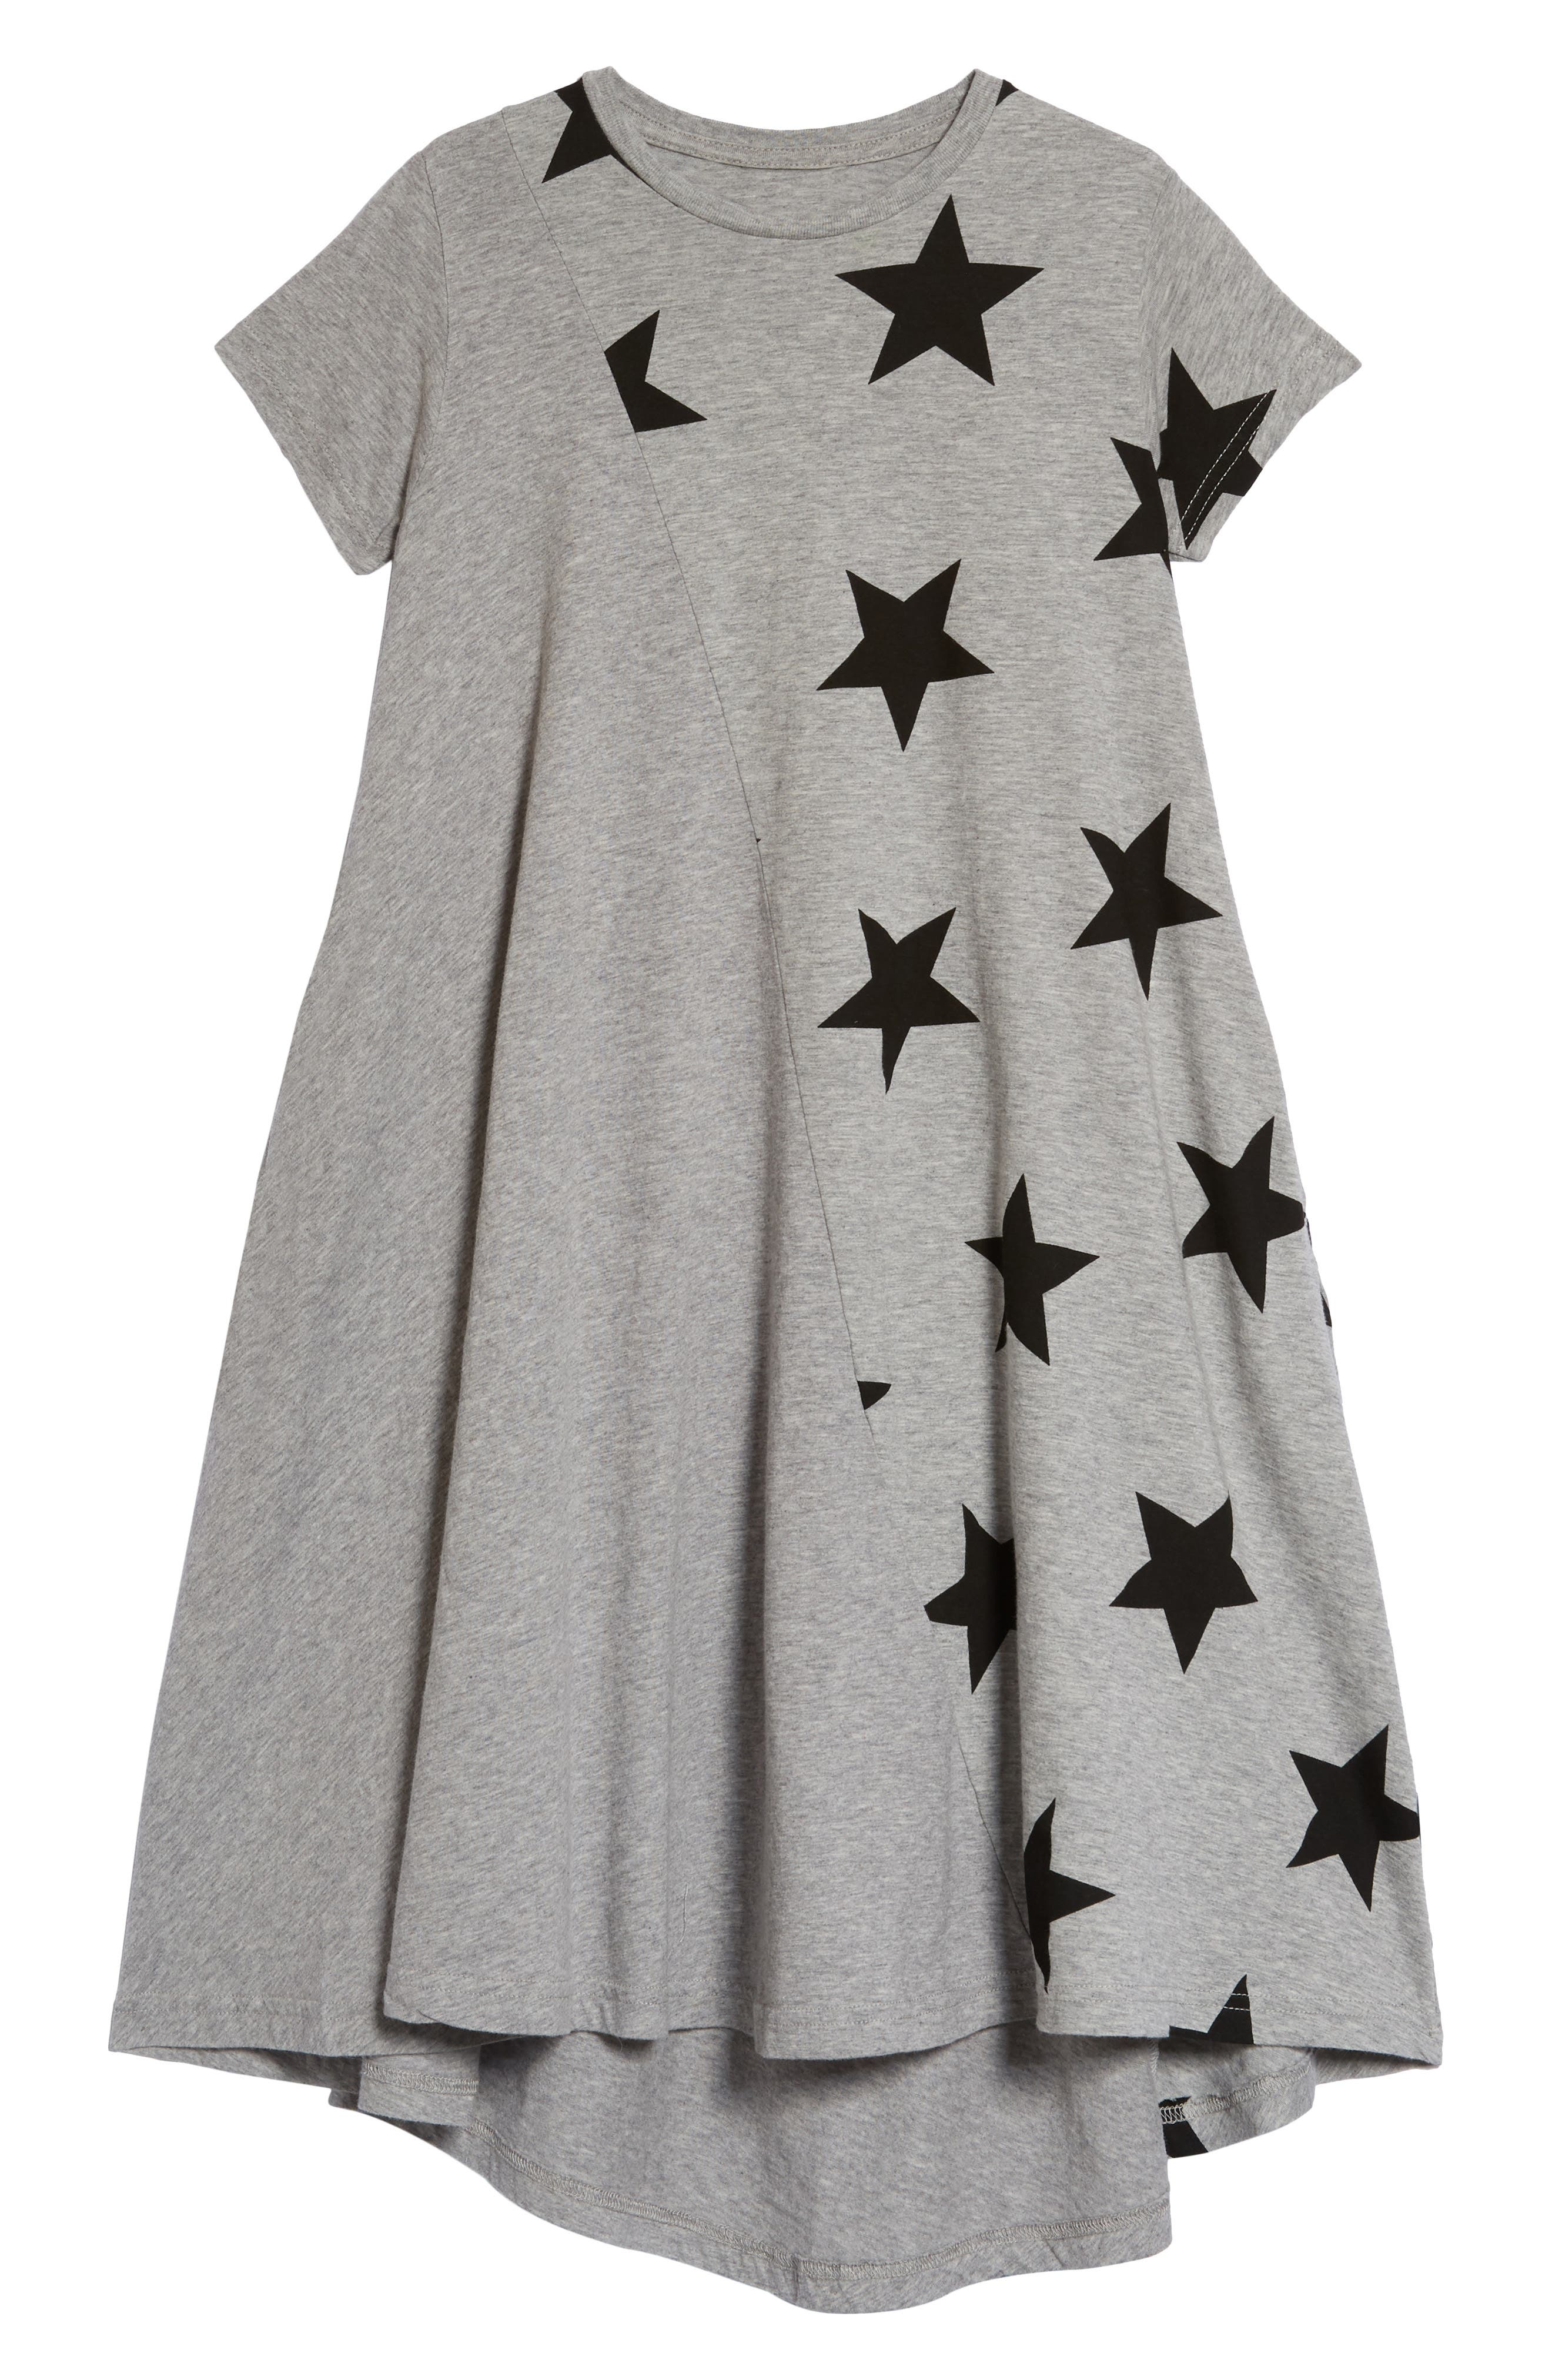 360 Star Print Dress,                             Main thumbnail 1, color,                             050